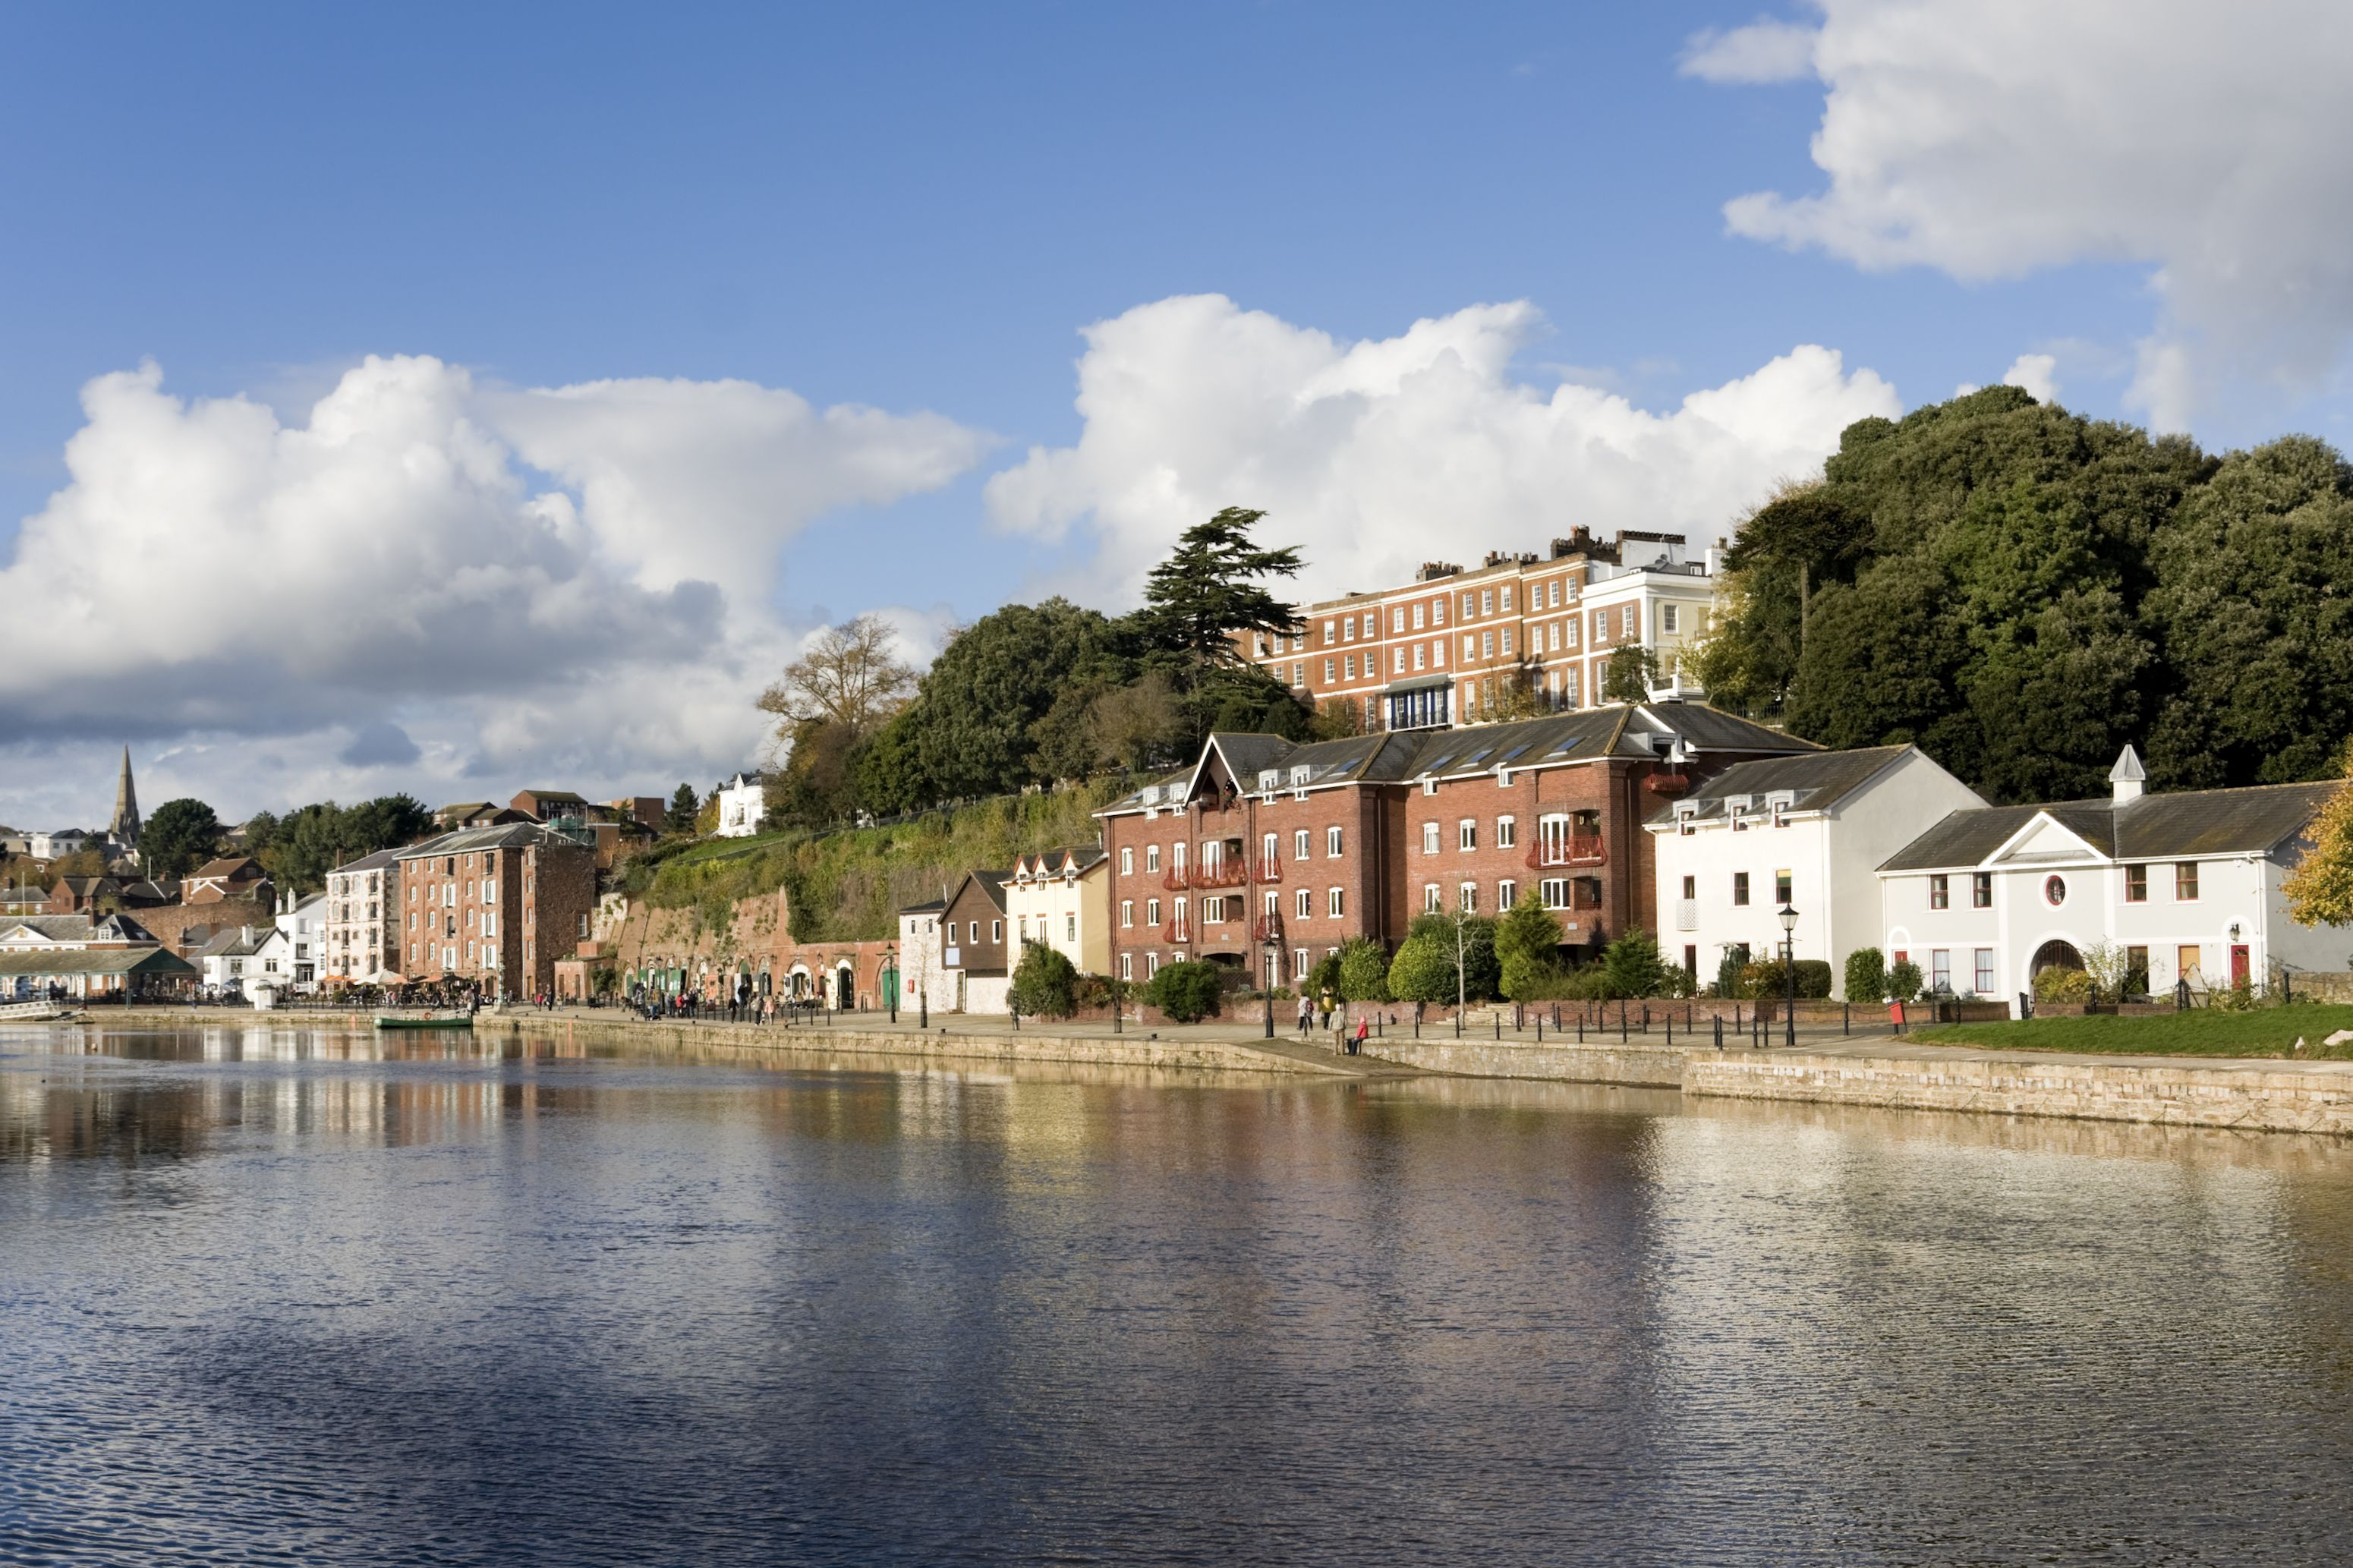 The river Exe and Exeter quayside in Devon